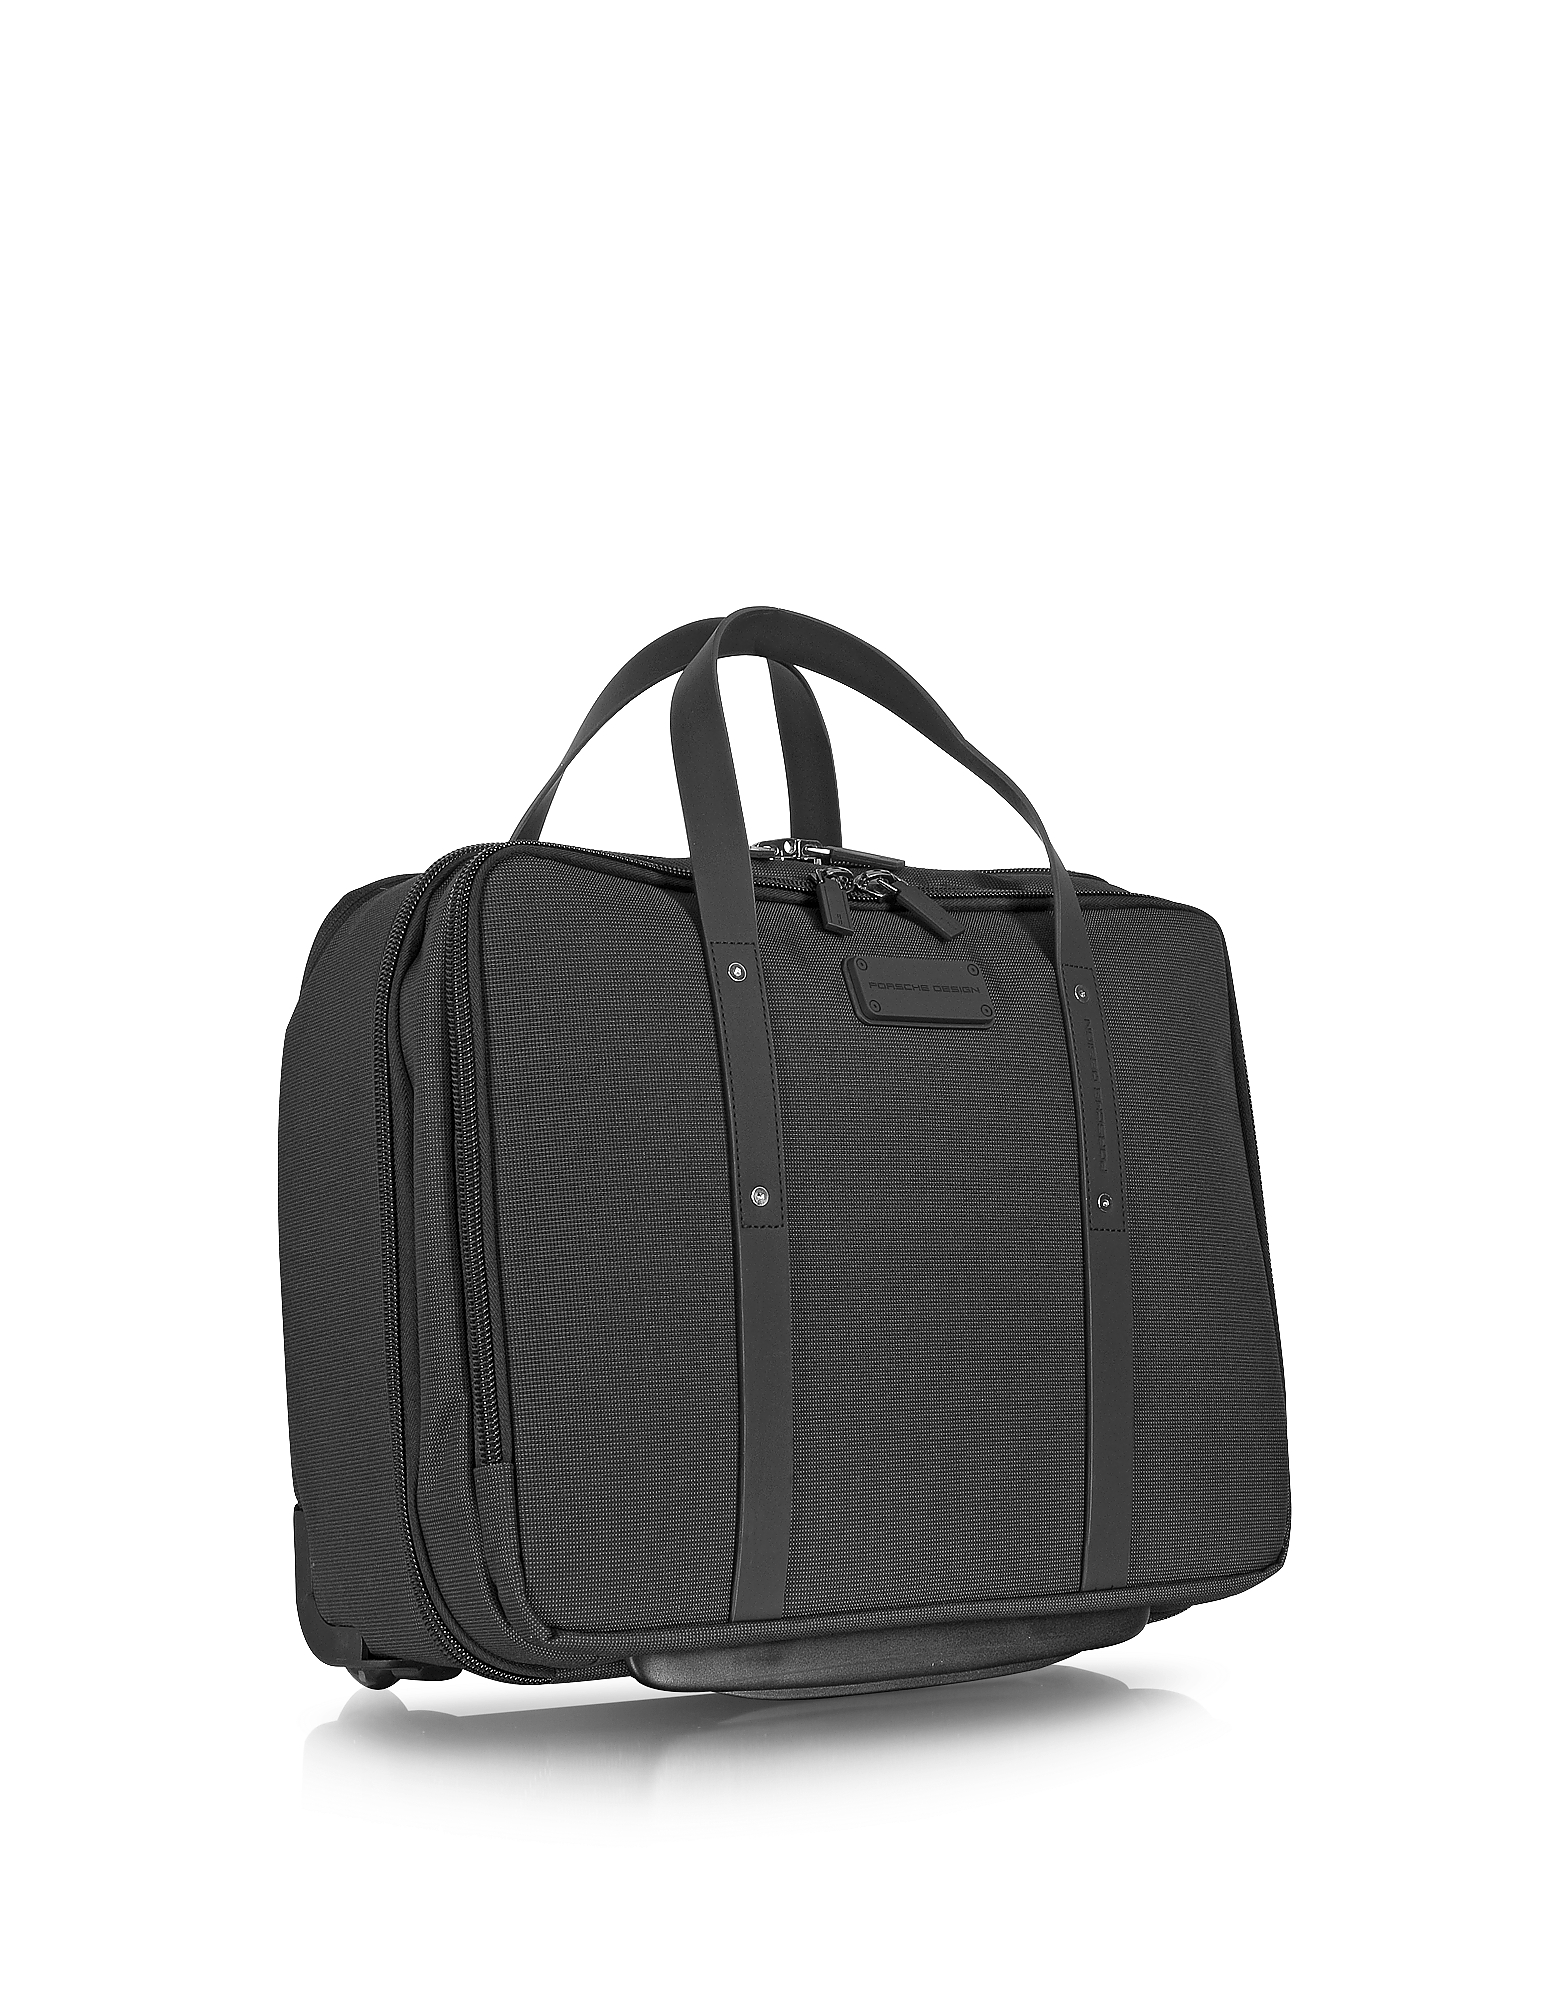 Porsche Design Cargon 2.5 BriefBag S - Троллей